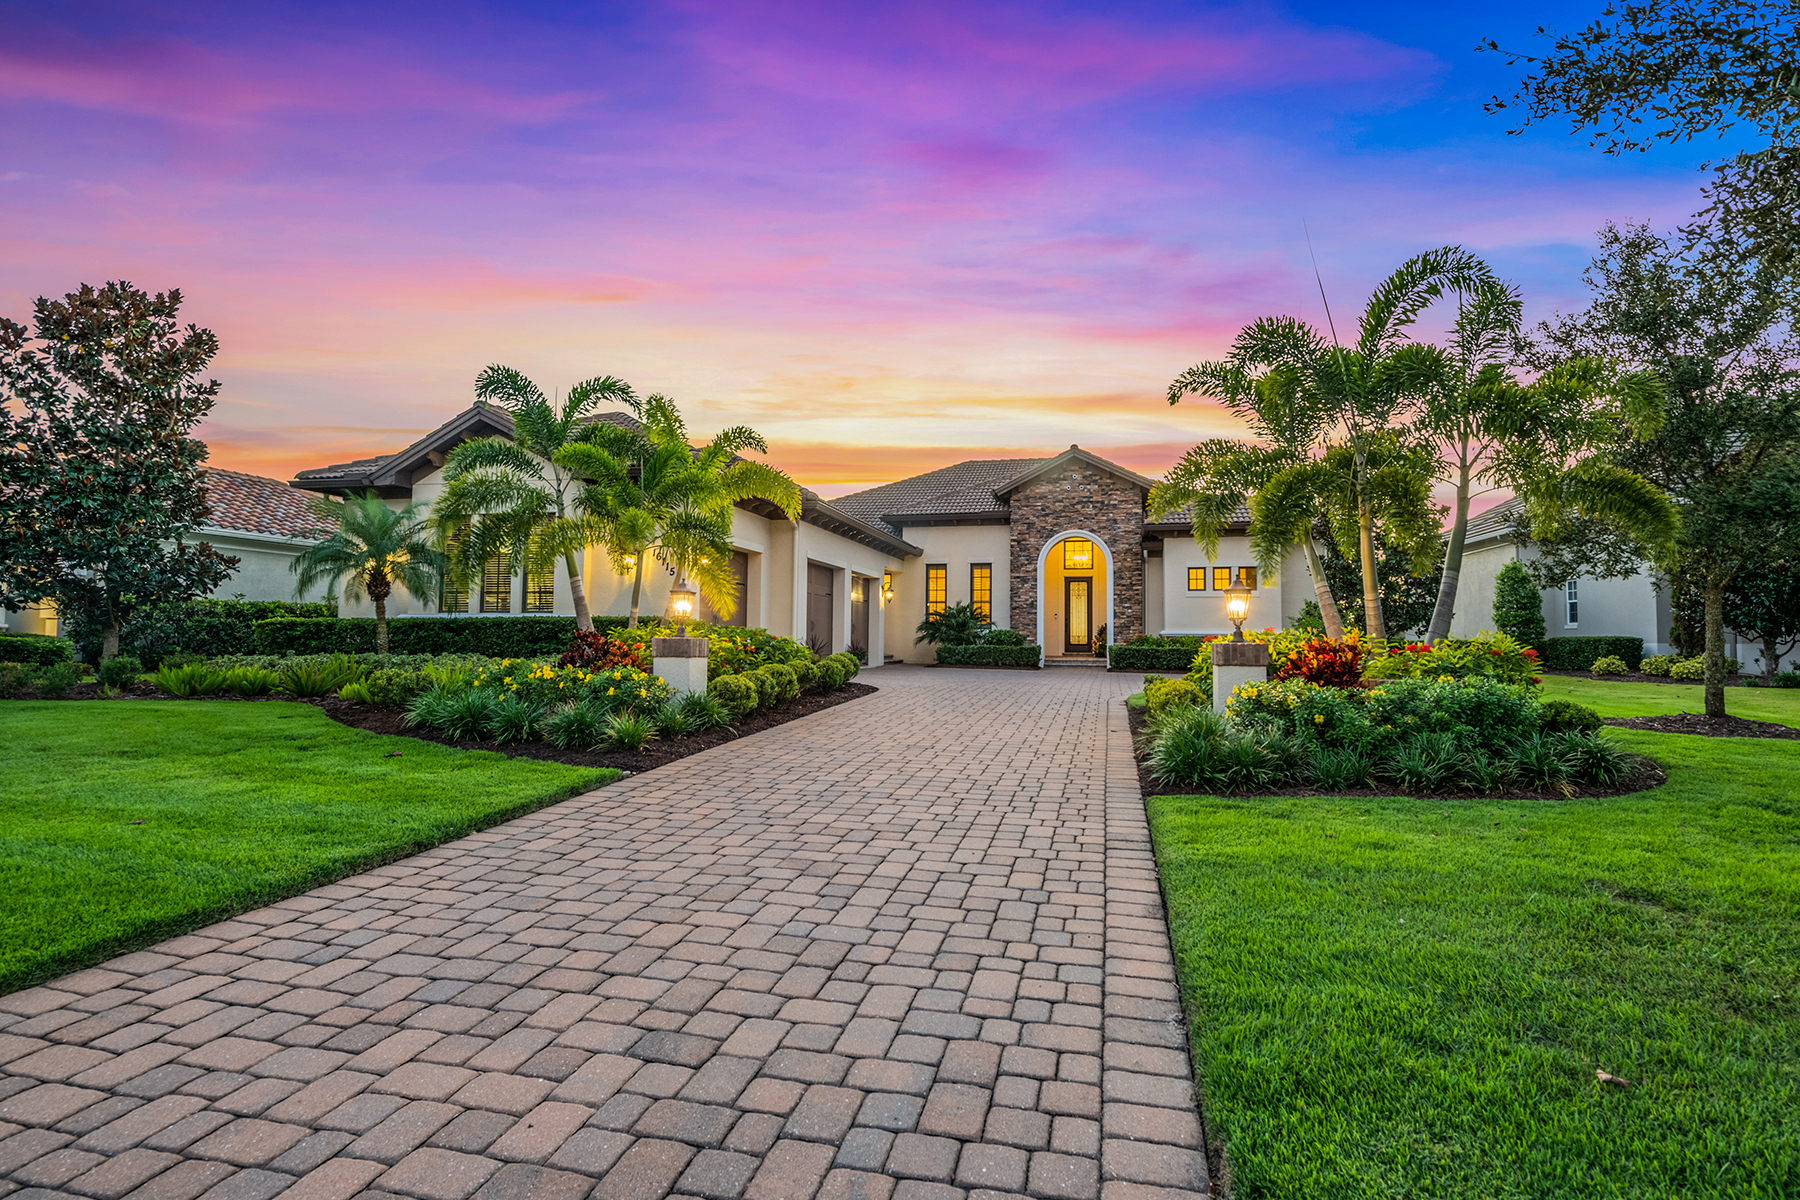 Single Family Homes for Sale at 16115 Daysailor Trl, Lakewood Ranch, Florida 34202 United States